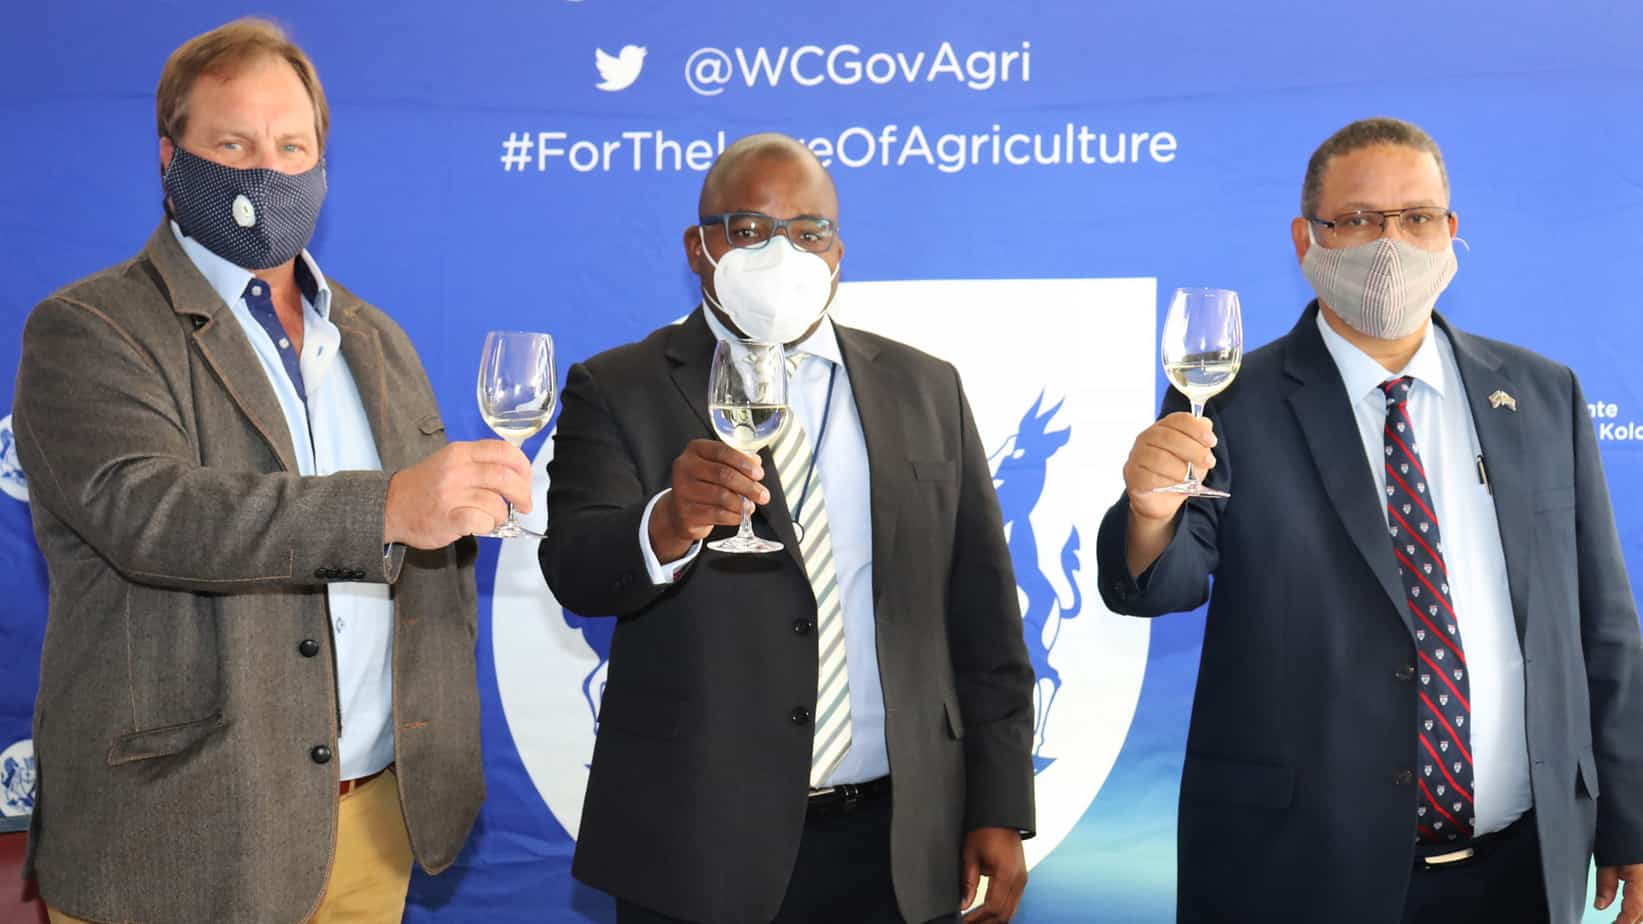 A R12 million partnership between the Western Cape department of agriculture and Vinpro is set to benefit more than 1 300 employees working in the tourism wine industry. Pictured are Vinpro chairman Anton Smuts, Western Cape head of agriculture Dr Mogale Sebopetsa and Dr Ivan Meyer, the provincial minister of agriculture. Photo: Supplied